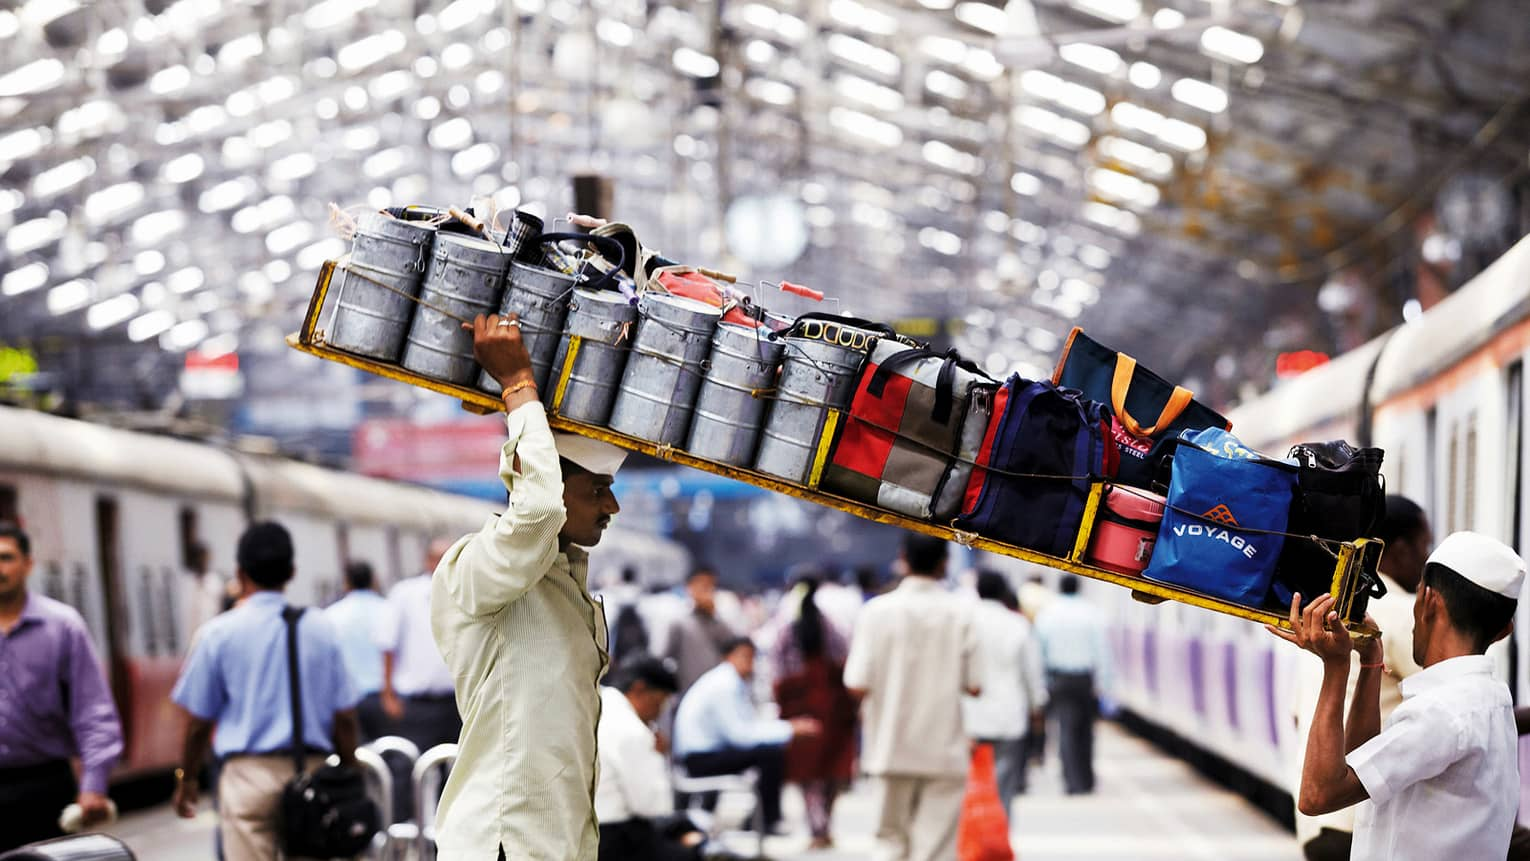 Dabbawalas lunchbox delivery men carry long tray with bags, cans through station